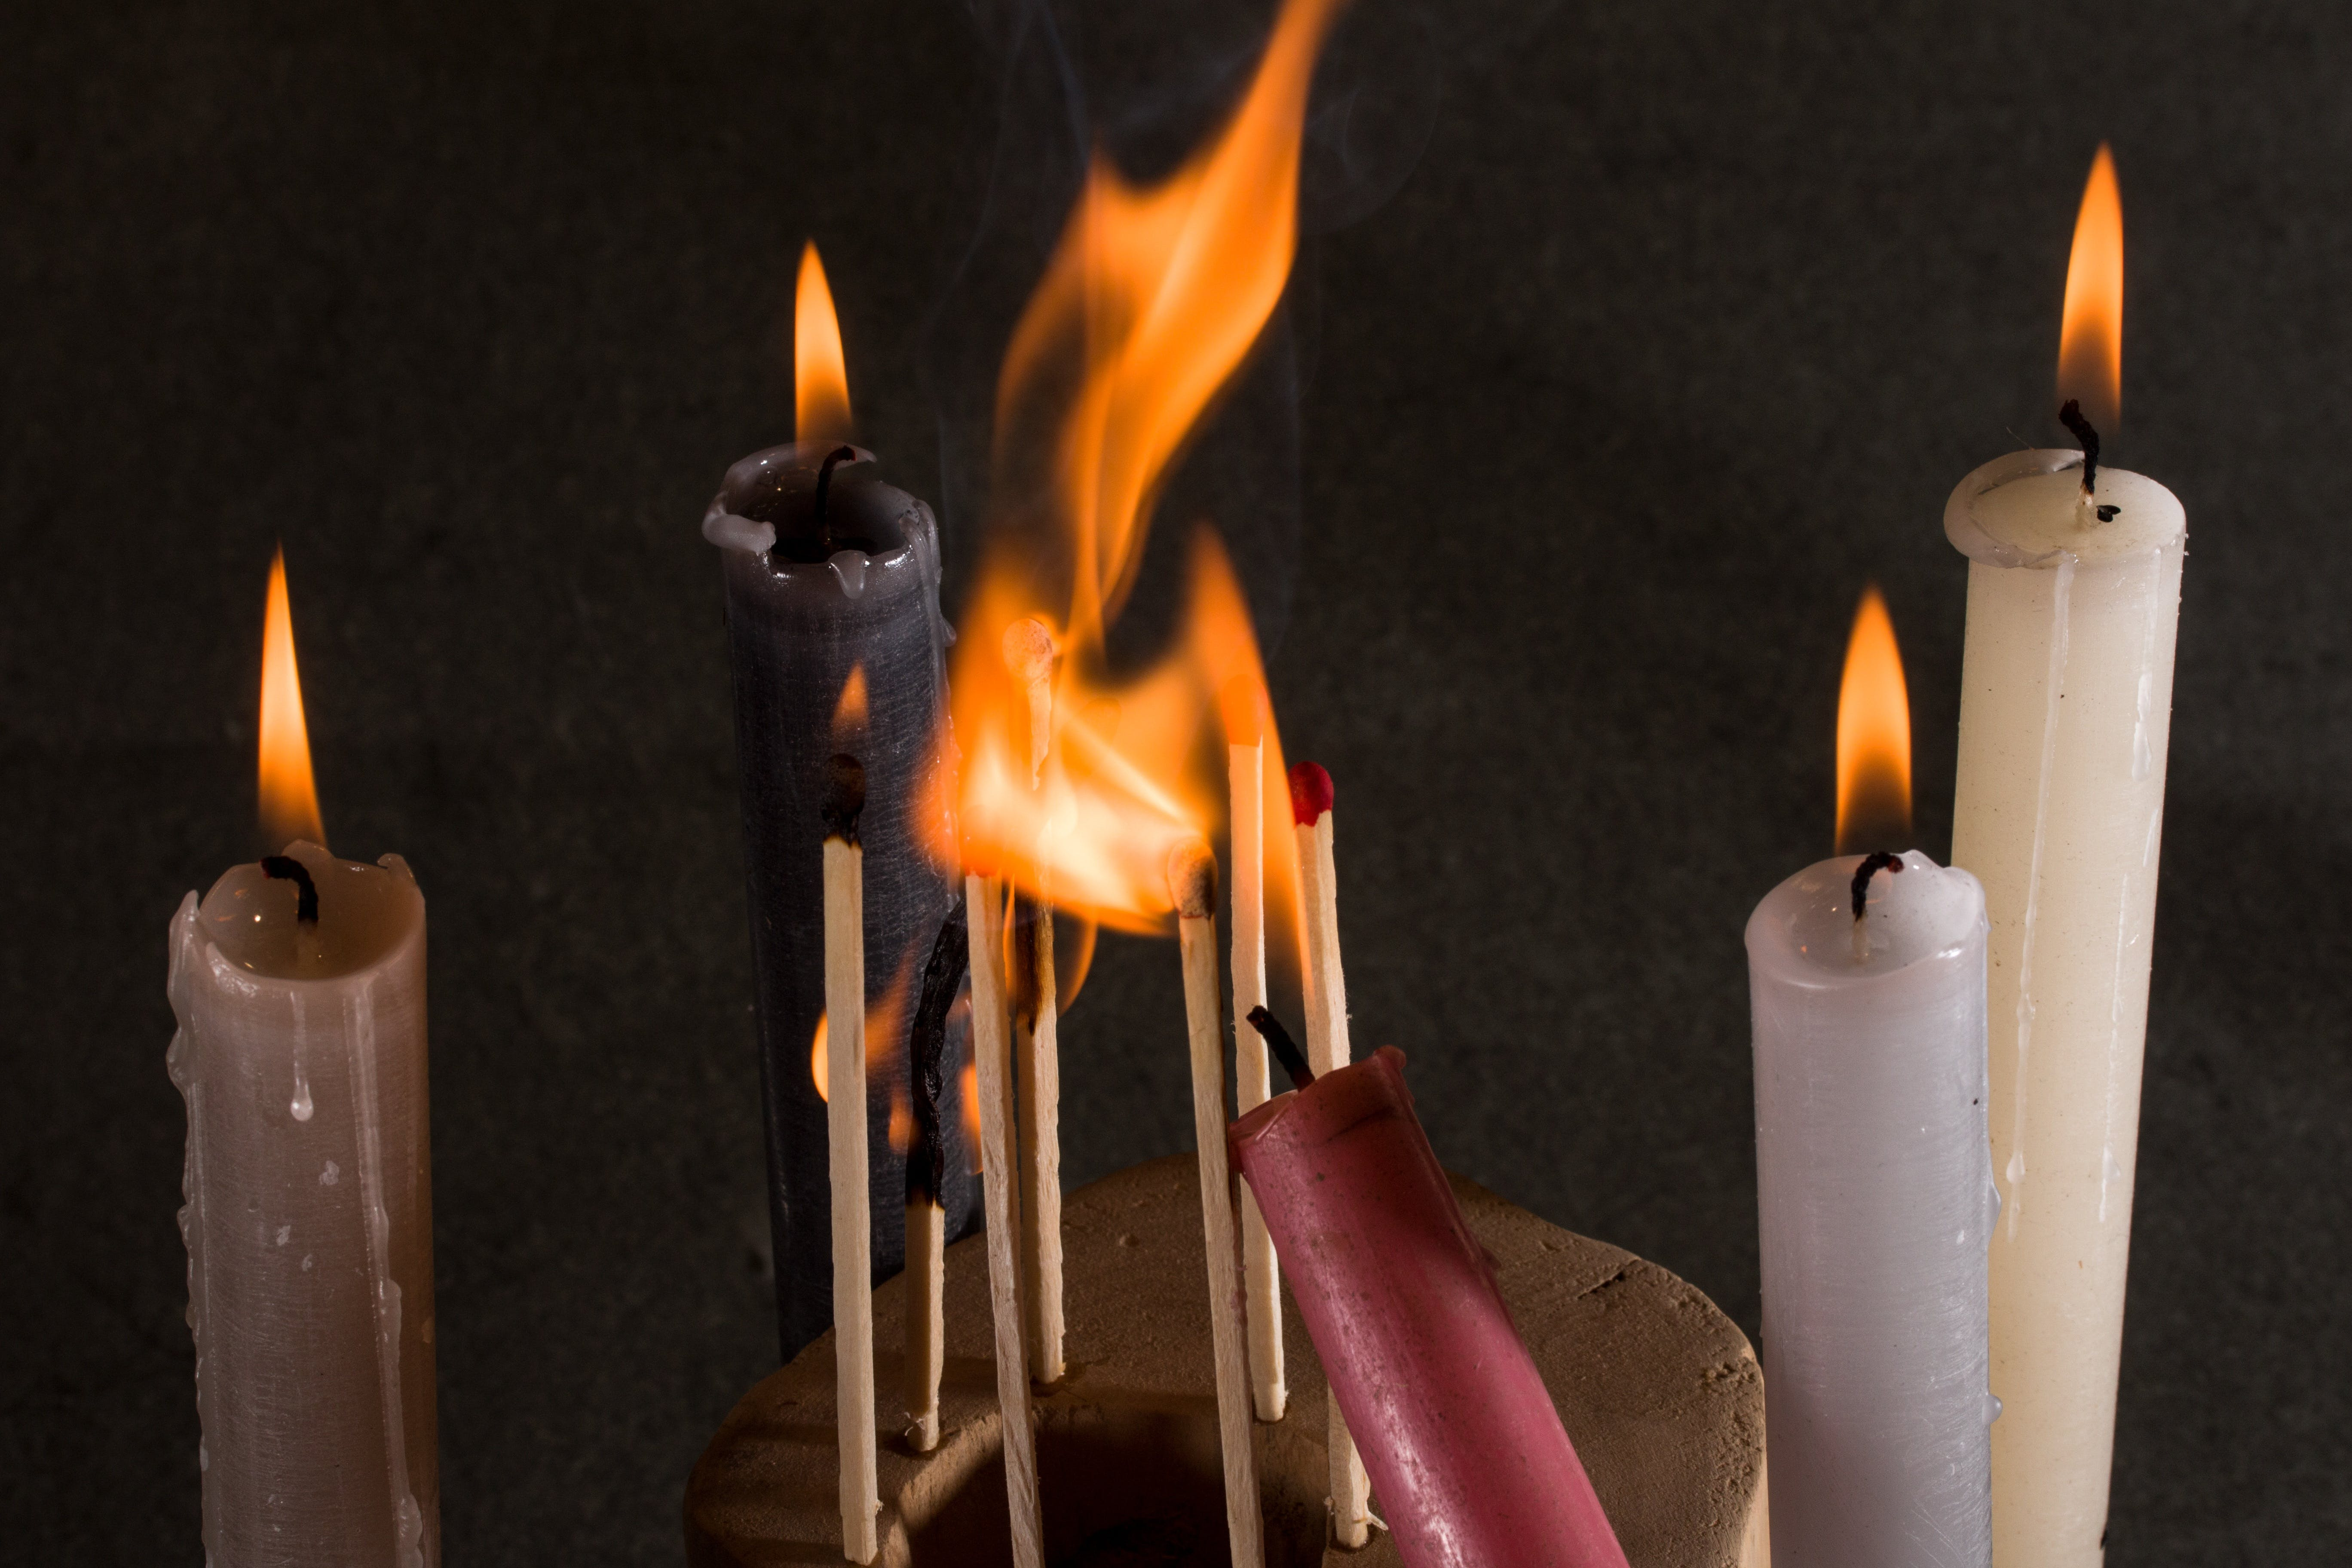 Free stock photo of fire, candles, matches, flame